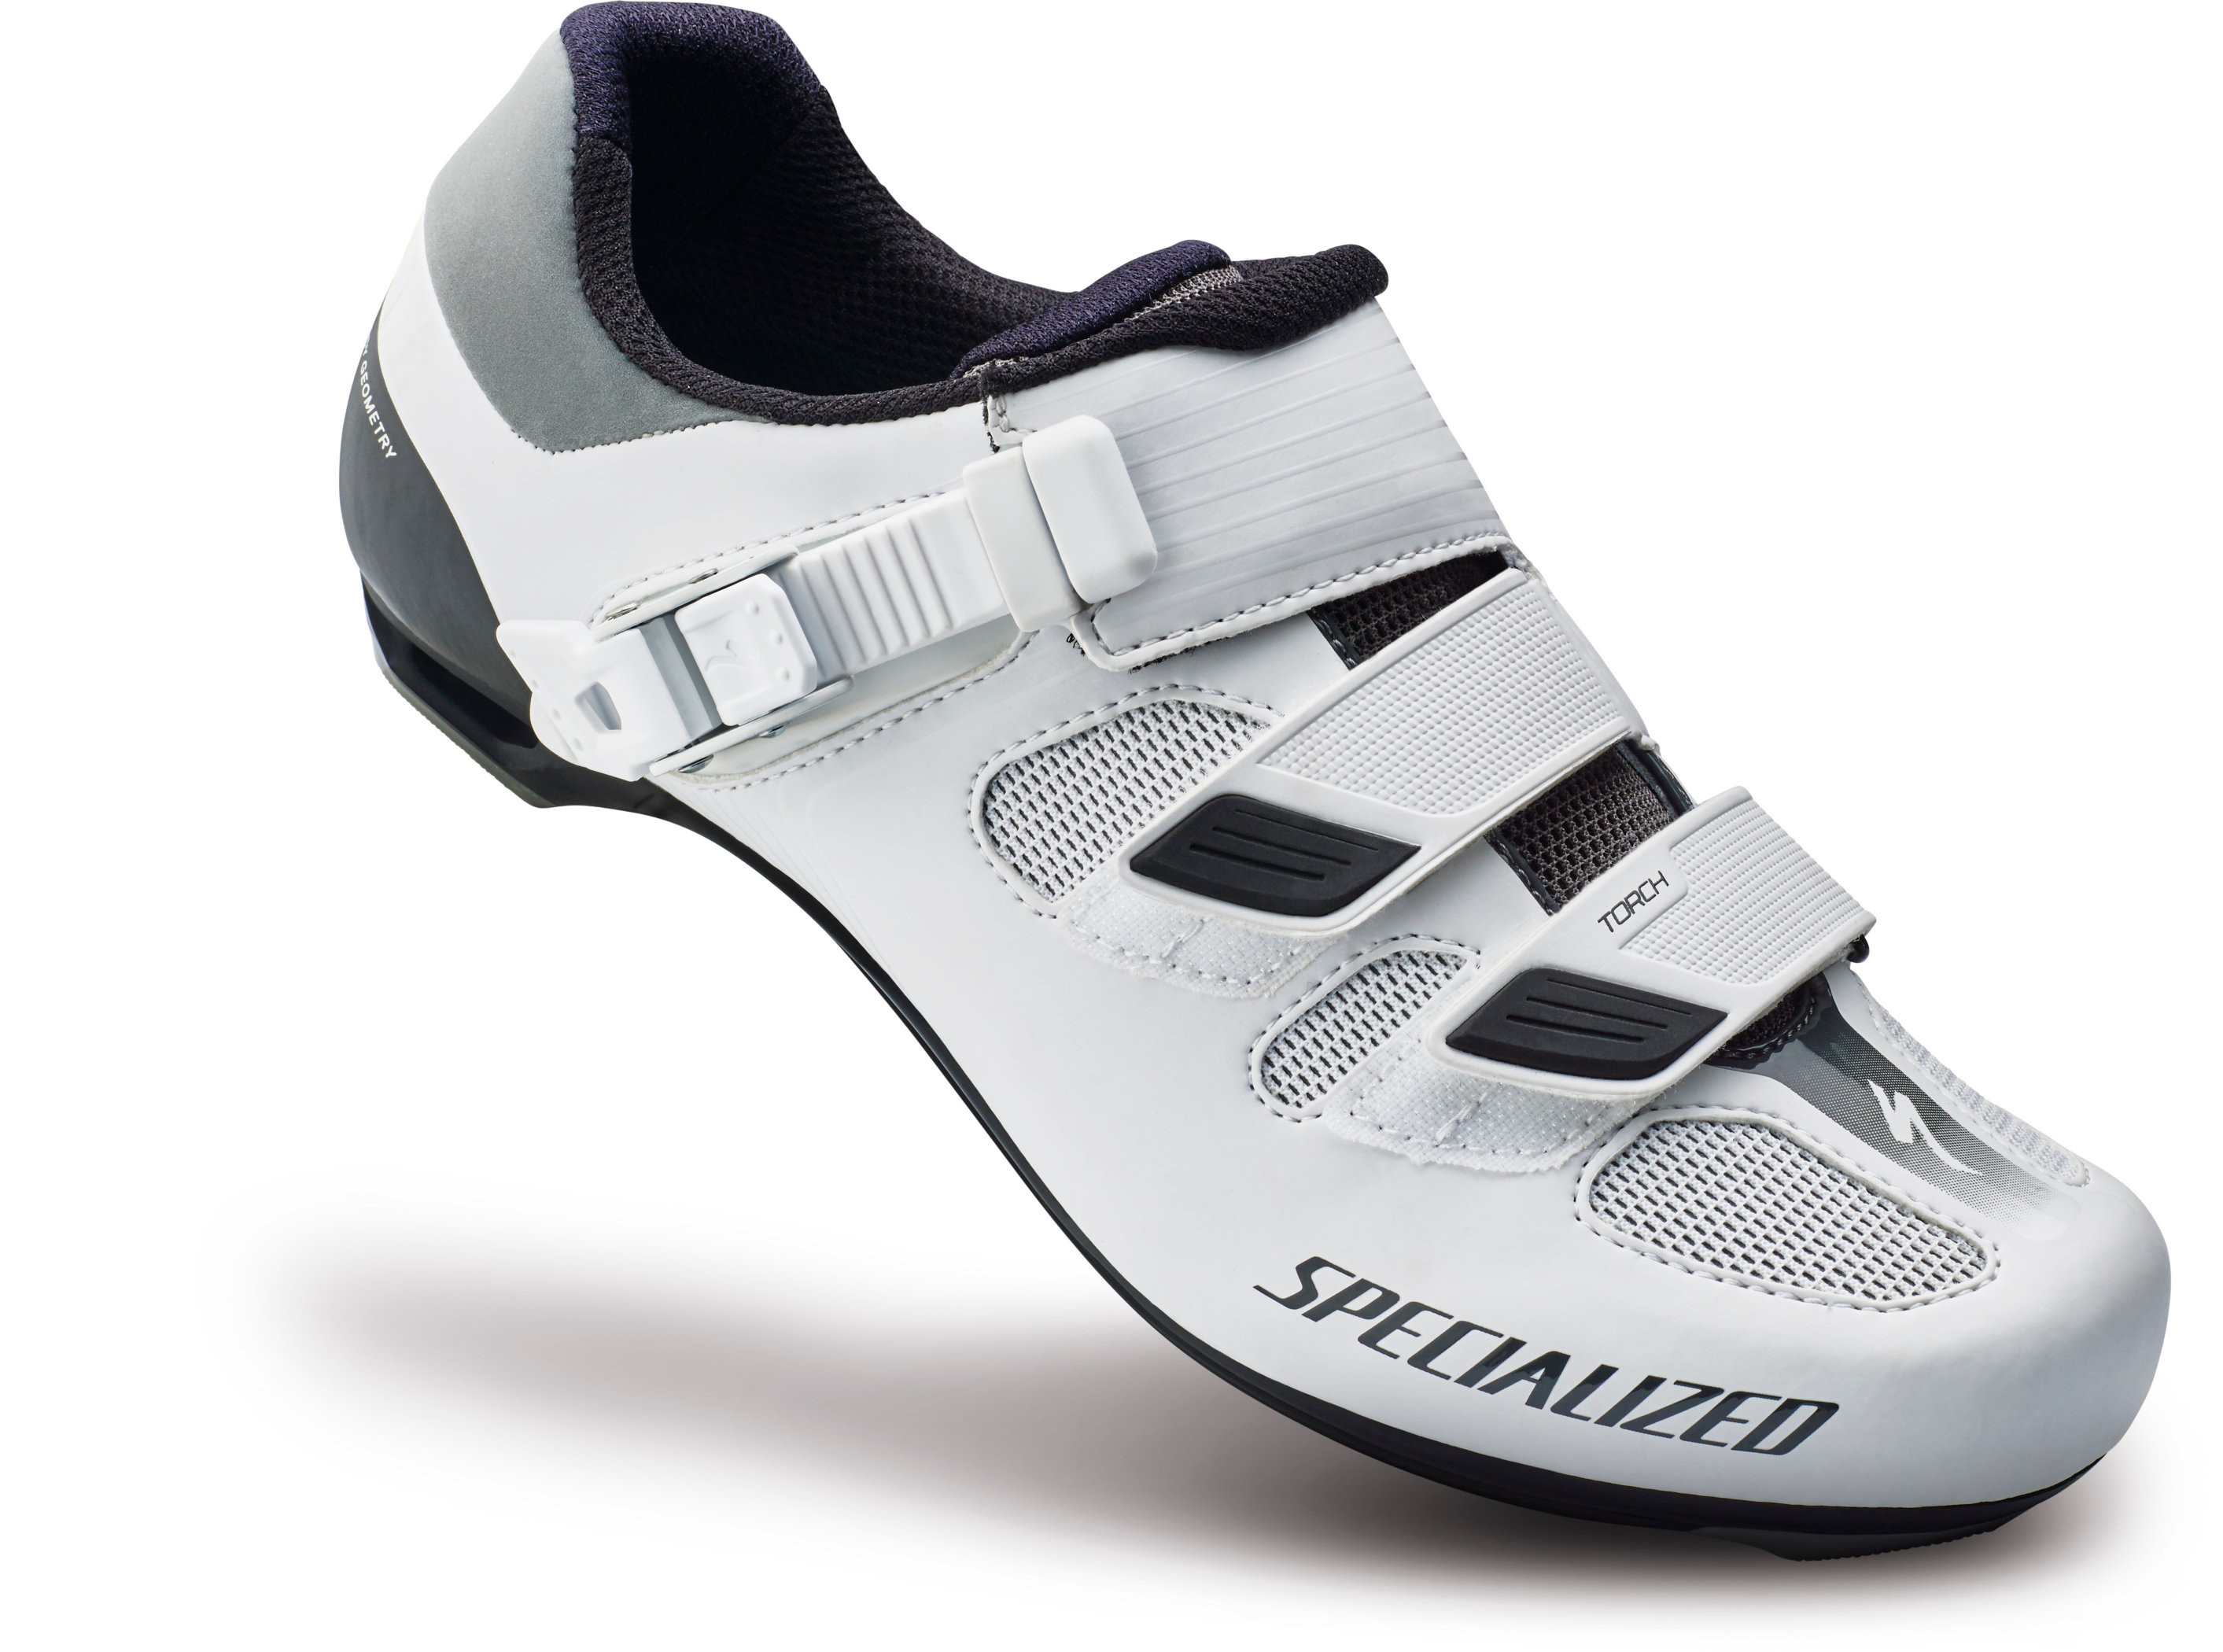 SPECIALIZED TORCH RD SHOE WMN WHT 39/8 - Bike Zone